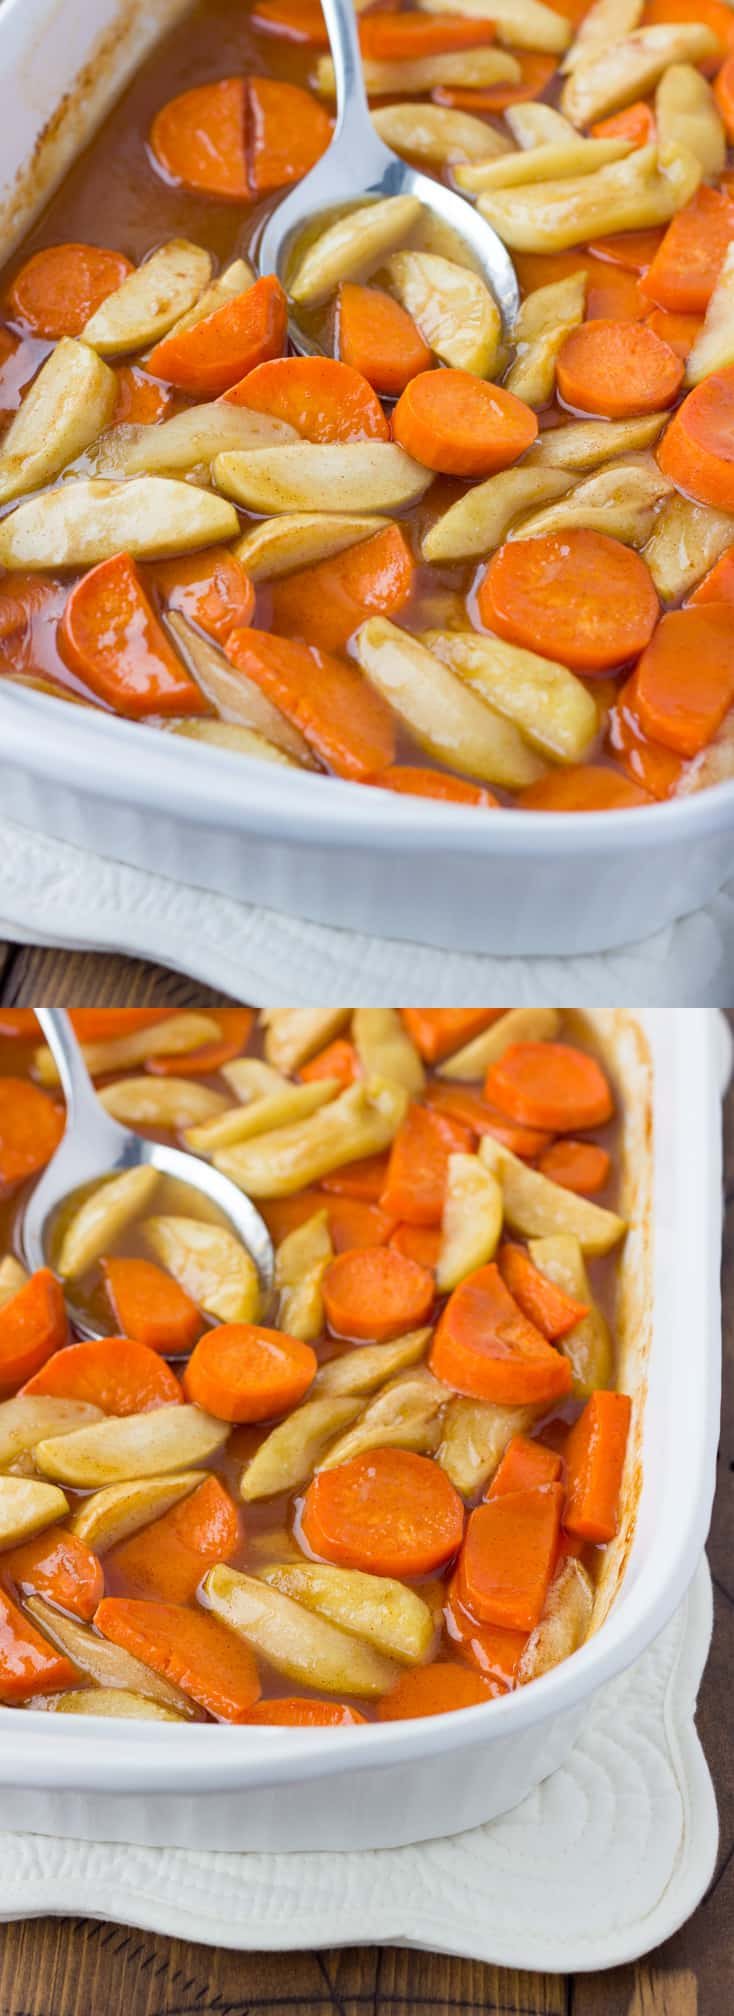 Baked Yamples - Sweet Potatoes and Apples in Brown Sugar Sauce! (Gluten-Free, Dairy-Free)